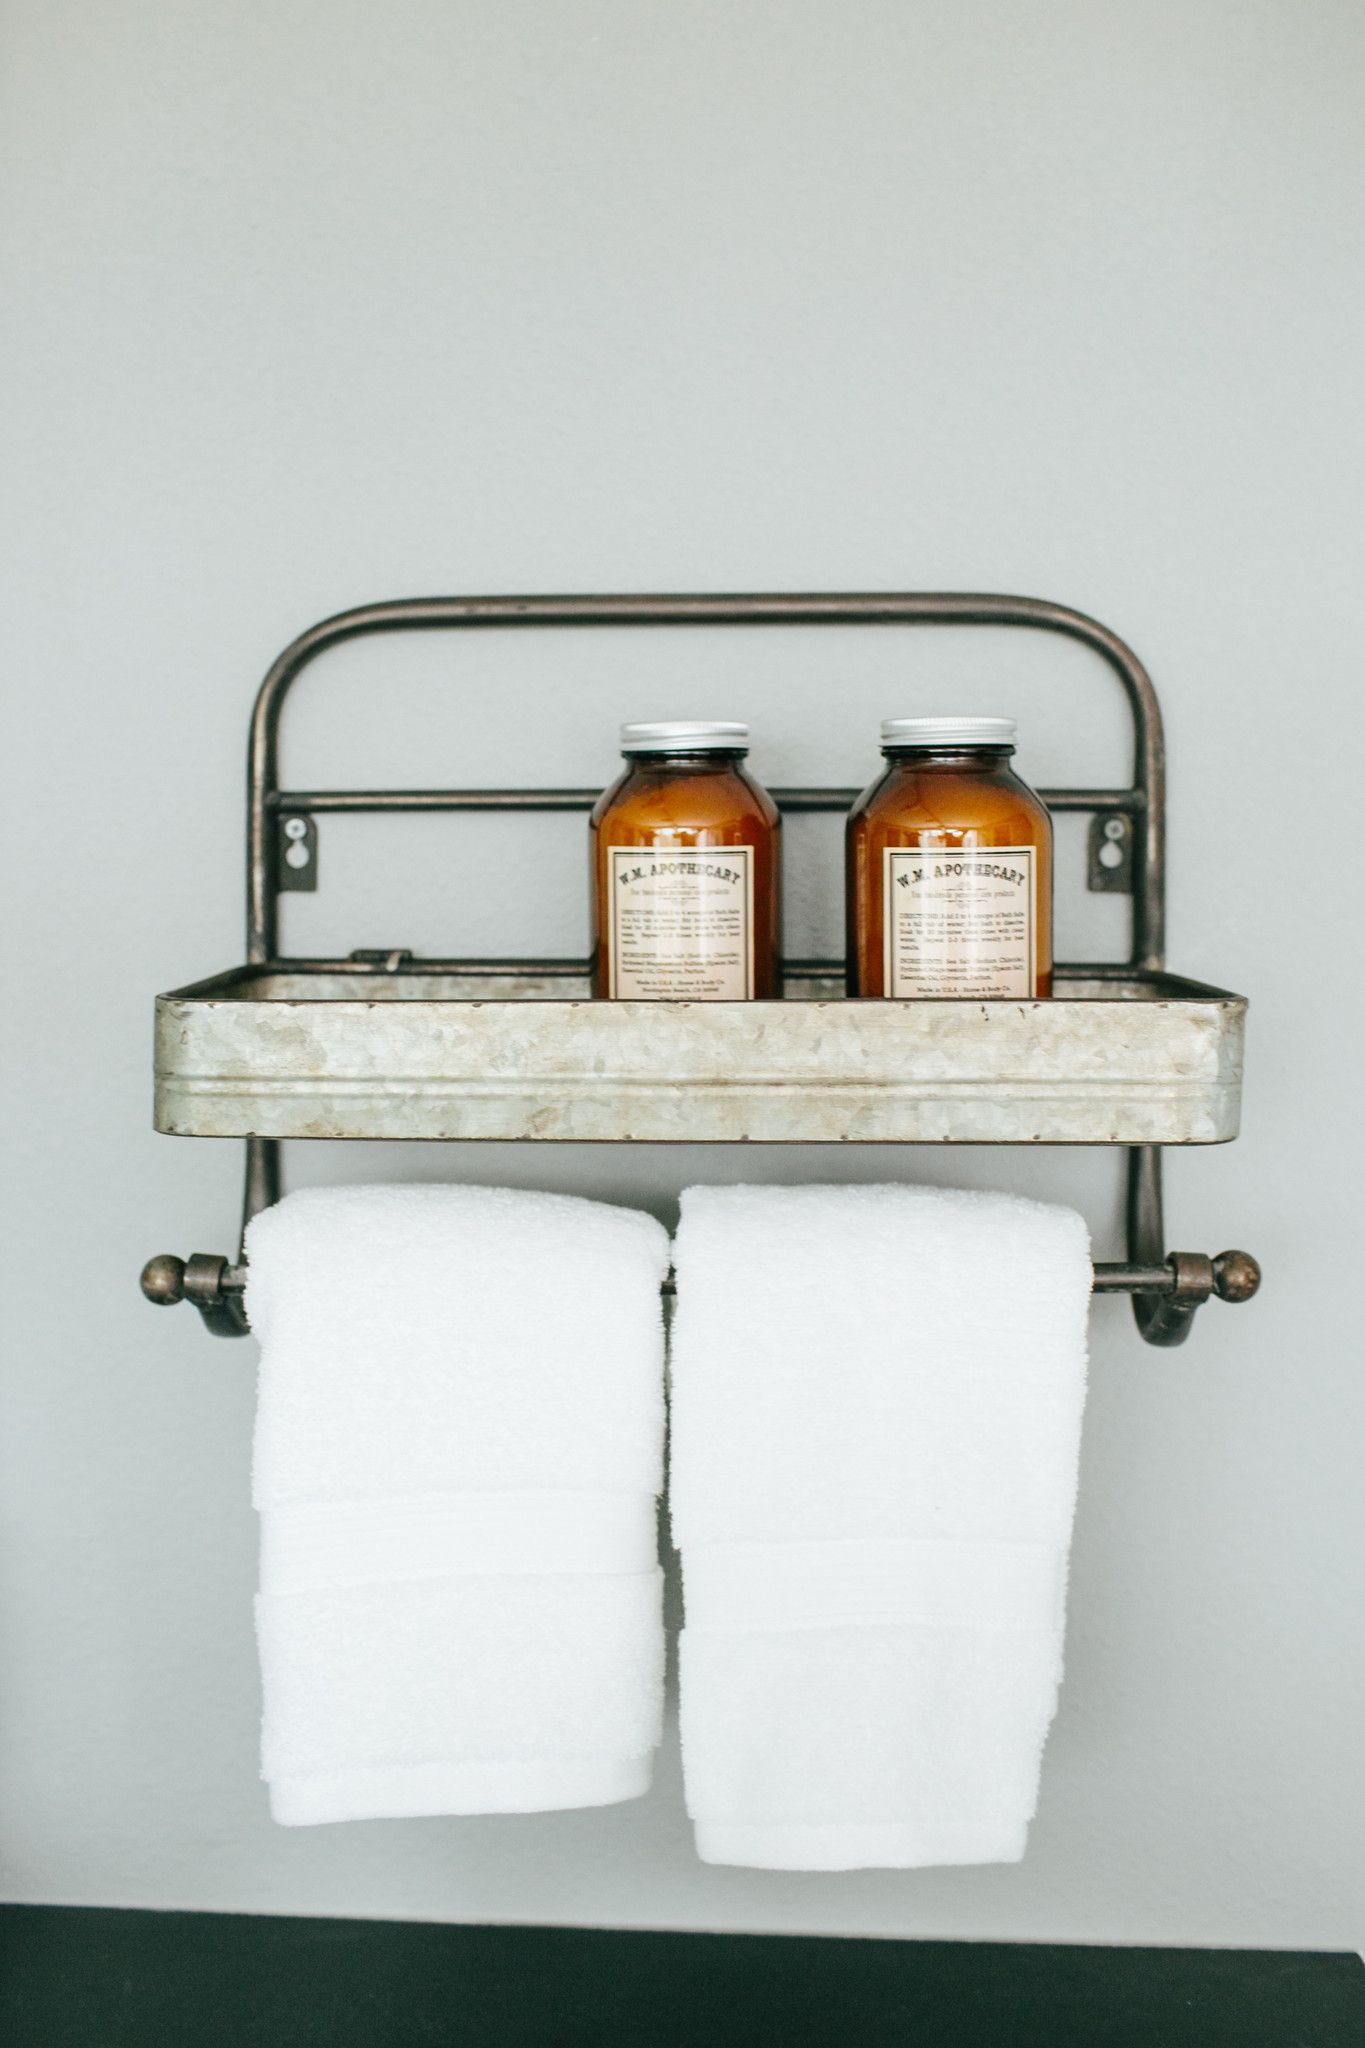 Towel Rack The Magnolia Market Towel Rack Bathrooms Remodel Magnolia Fixer Upper